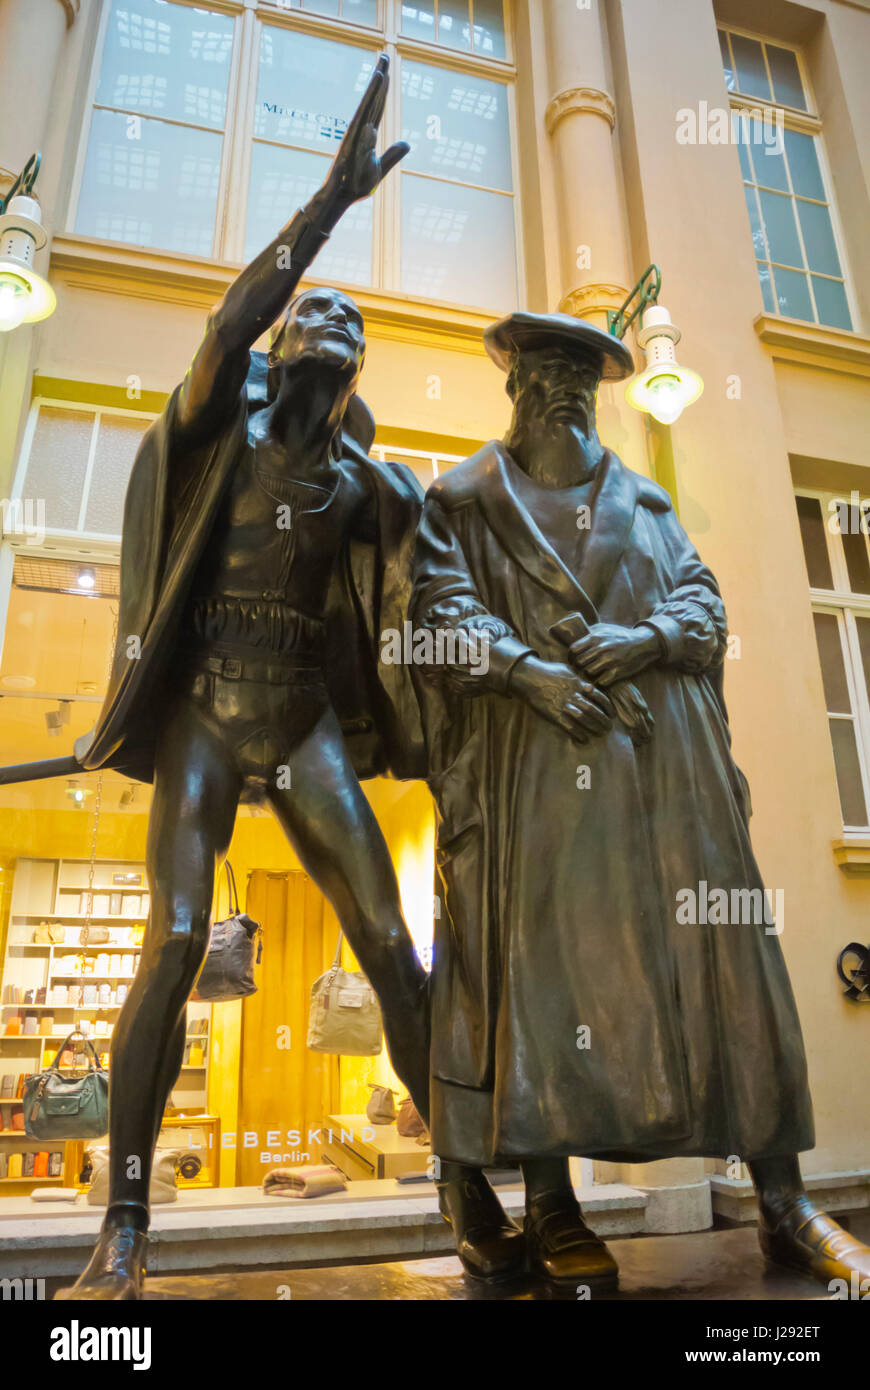 Statue of Faust and Mephistopheles, in front of Auerbachs Keller, Mädler-Passage, Altstadt, old town, Leipzig, - Stock Image